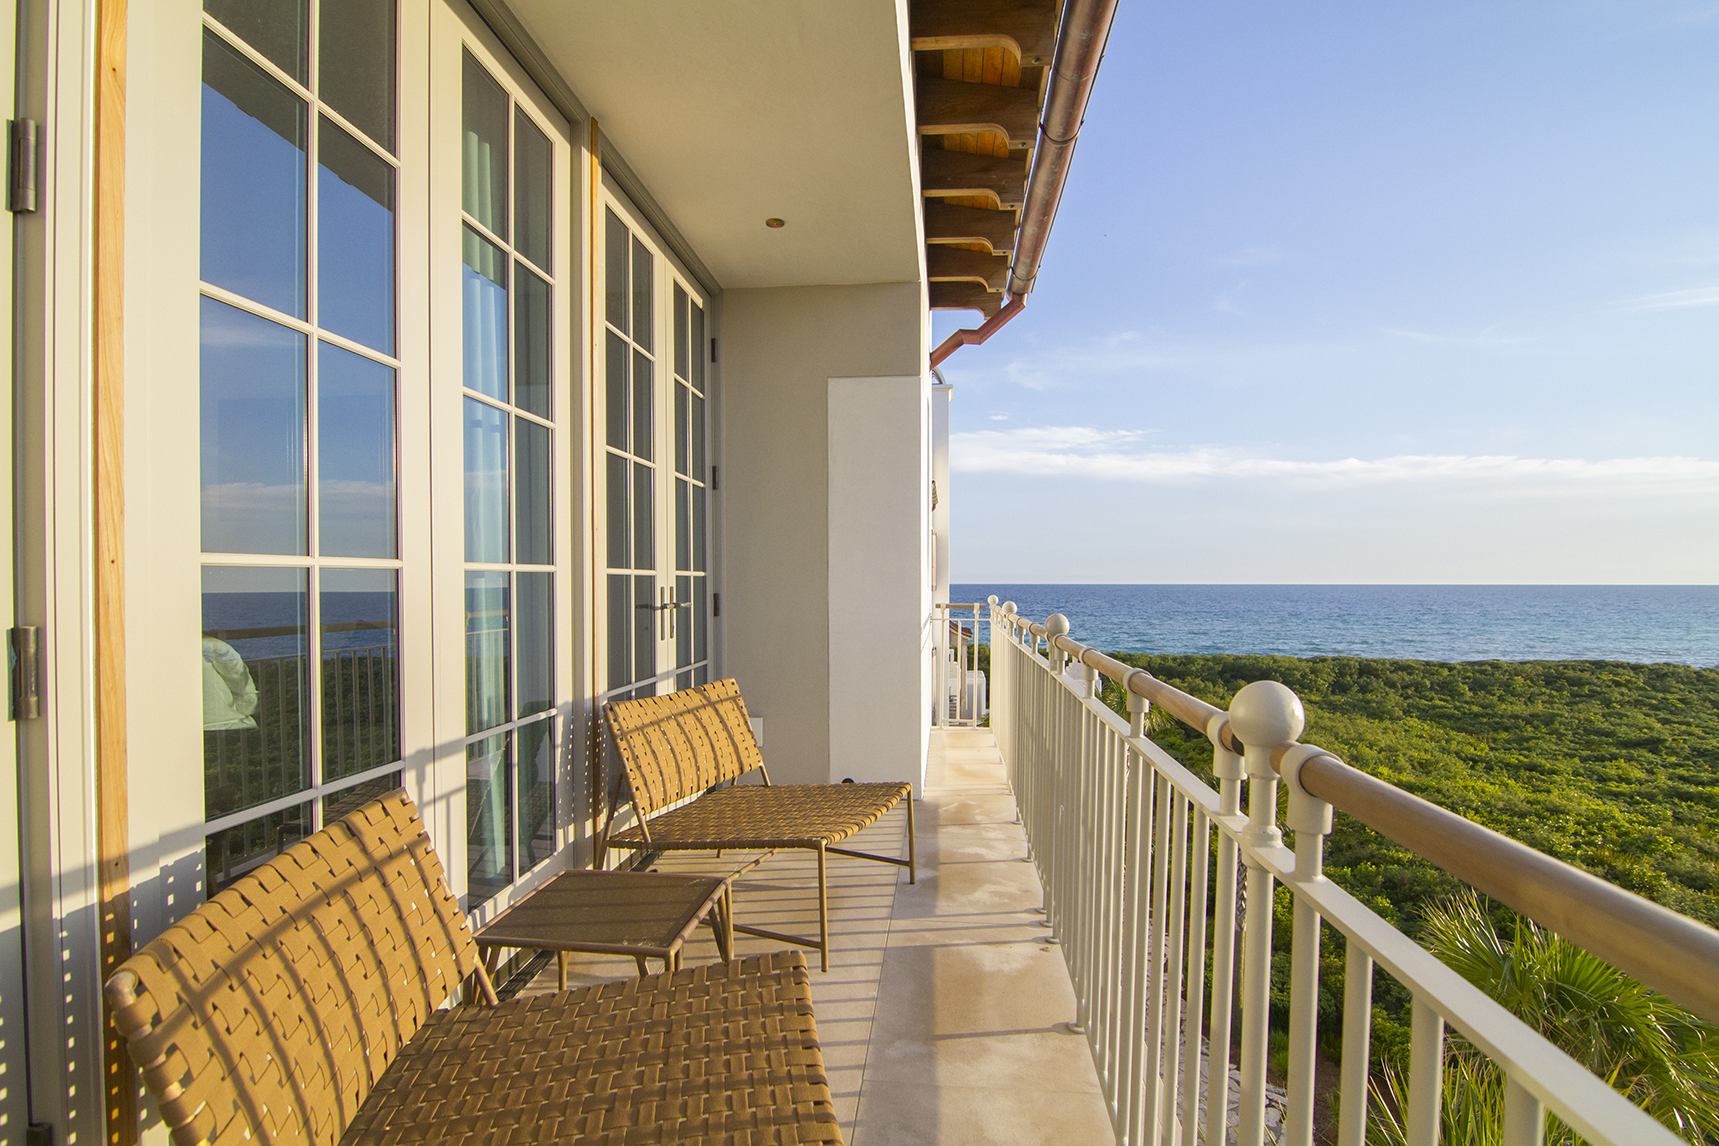 View of the gulf from Sea Garden in Alys Beach